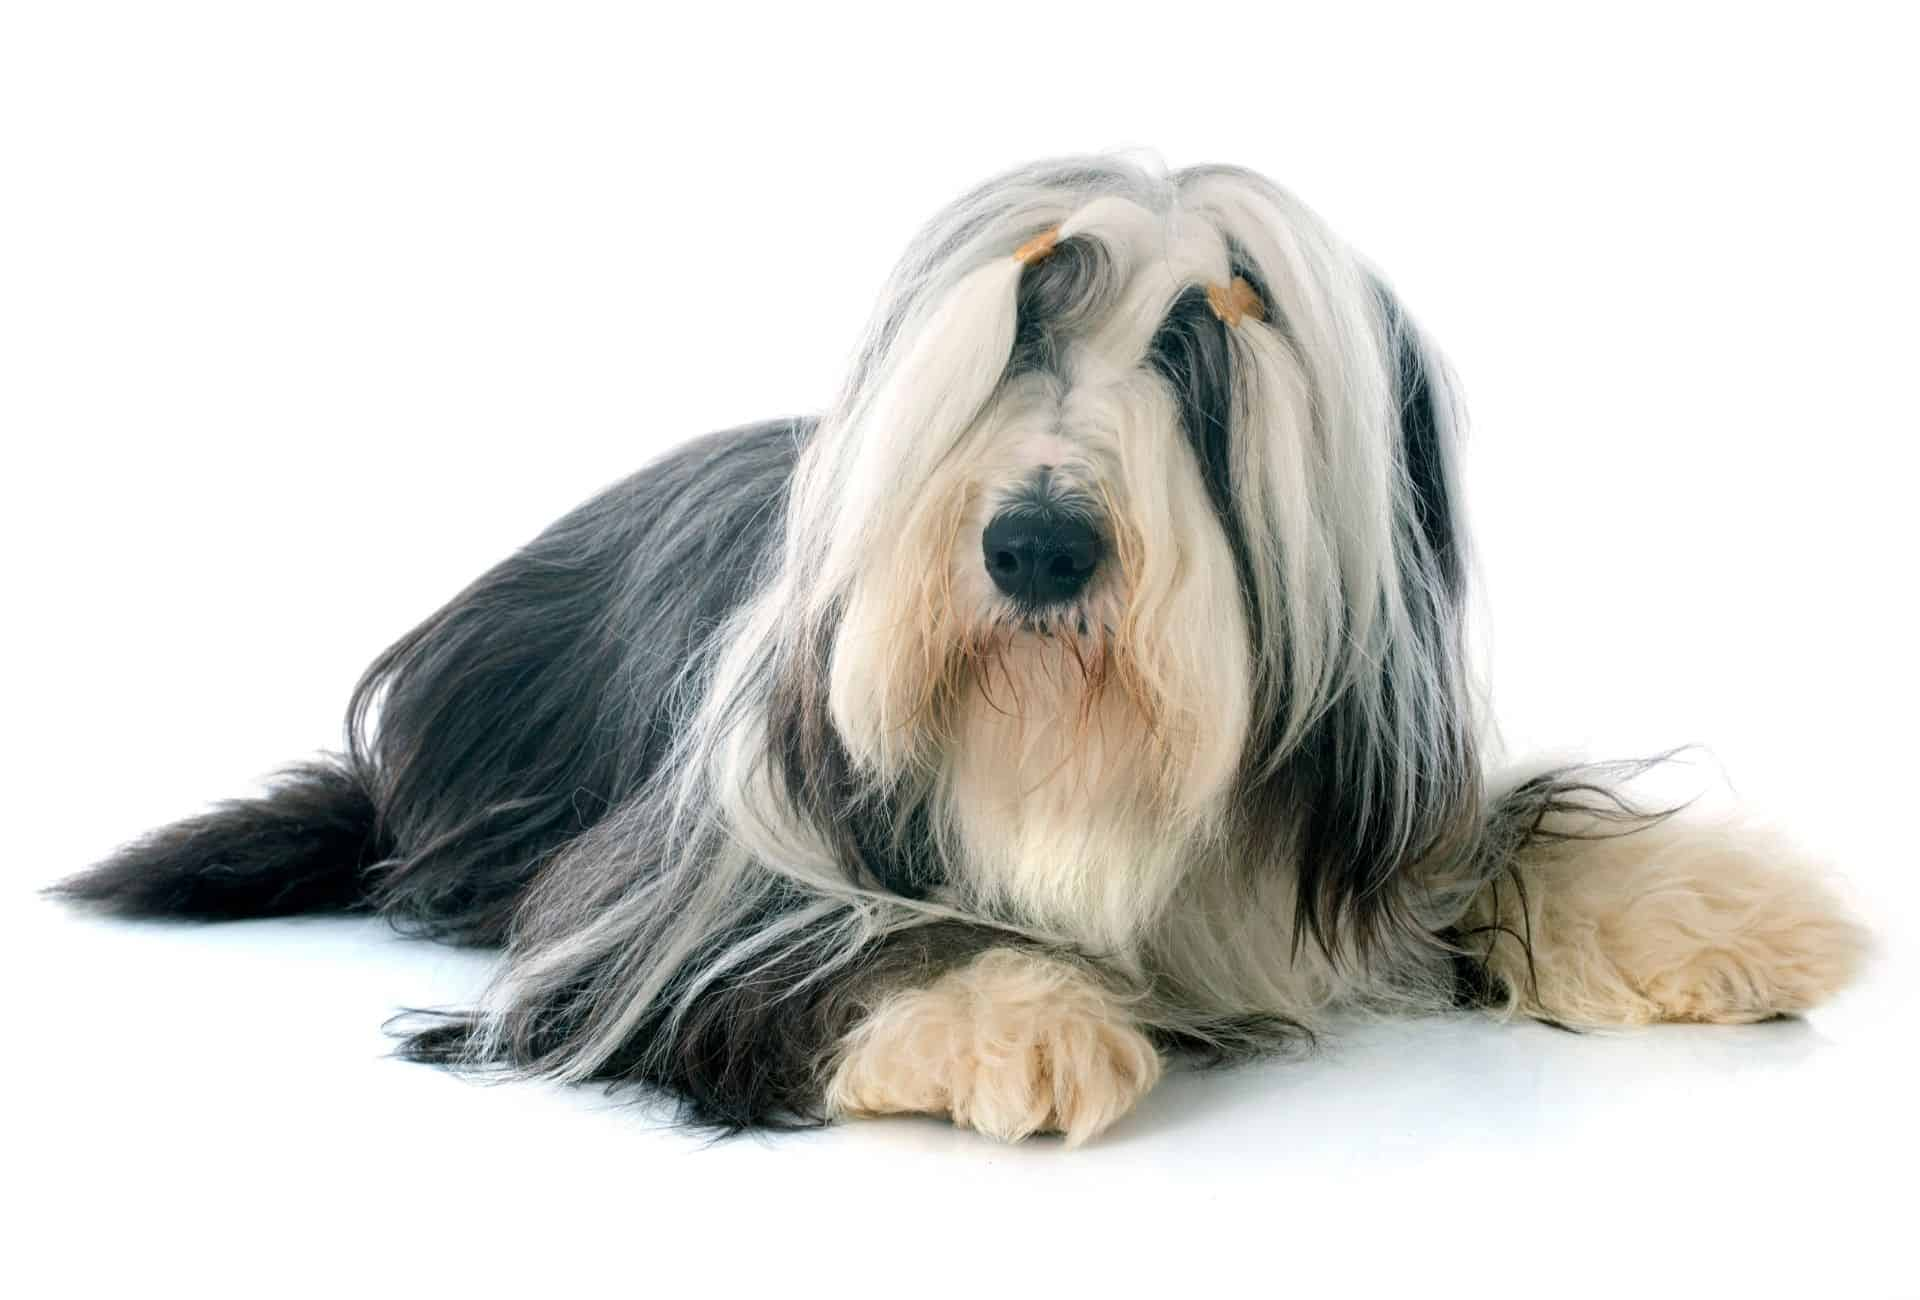 Bearded Collie laying down in front of white background.